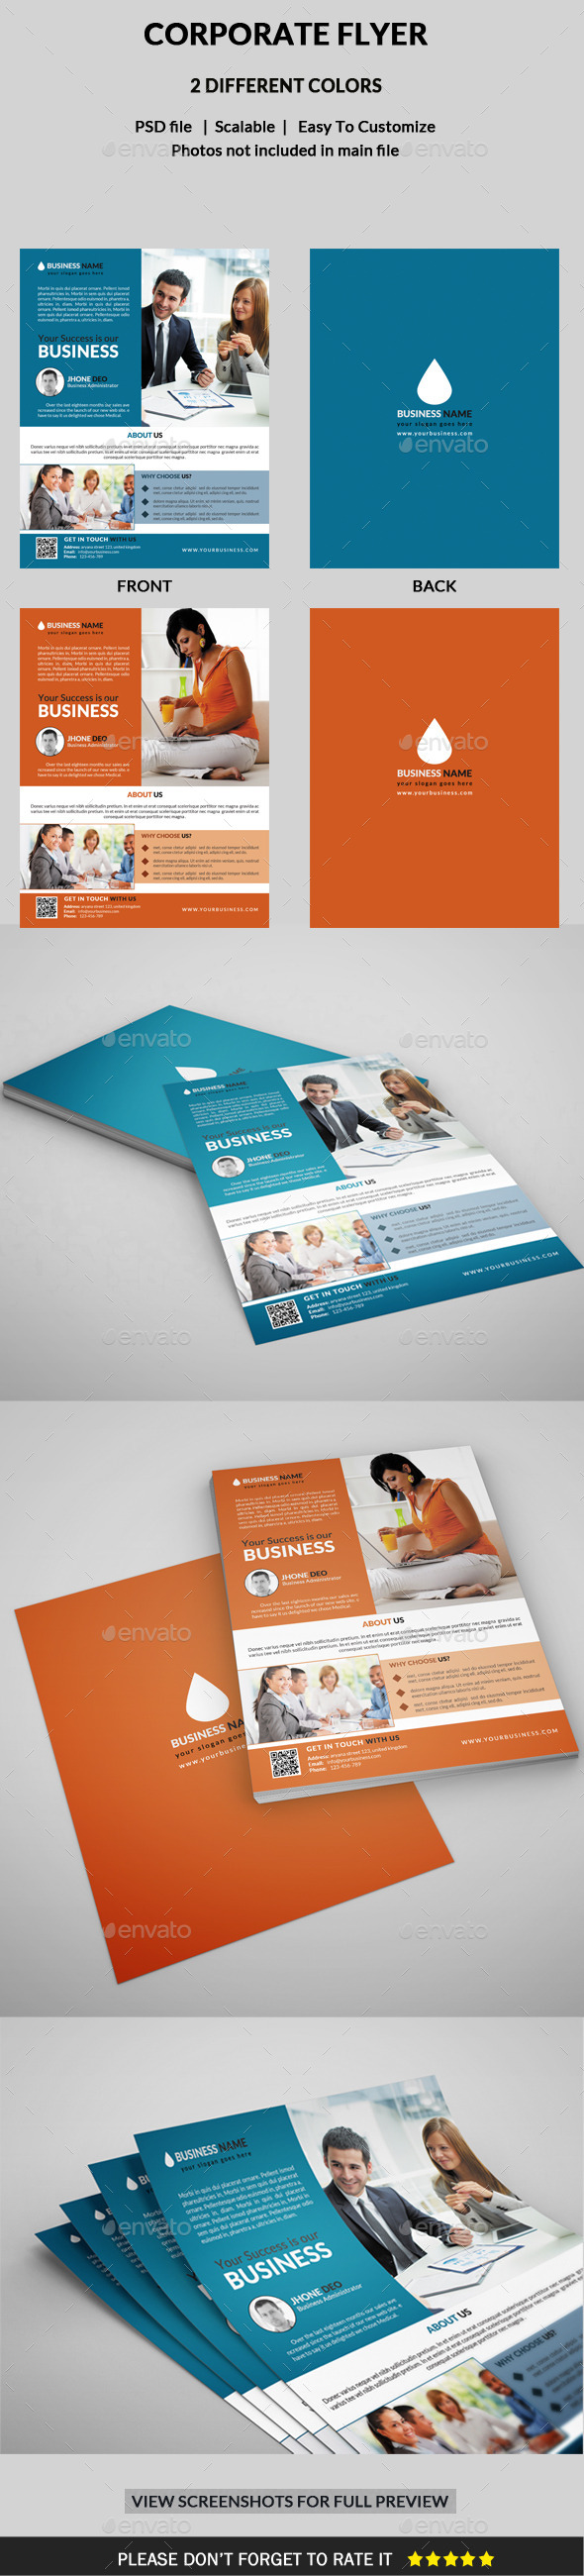 GraphicRiver Corporate Flyer 11180284